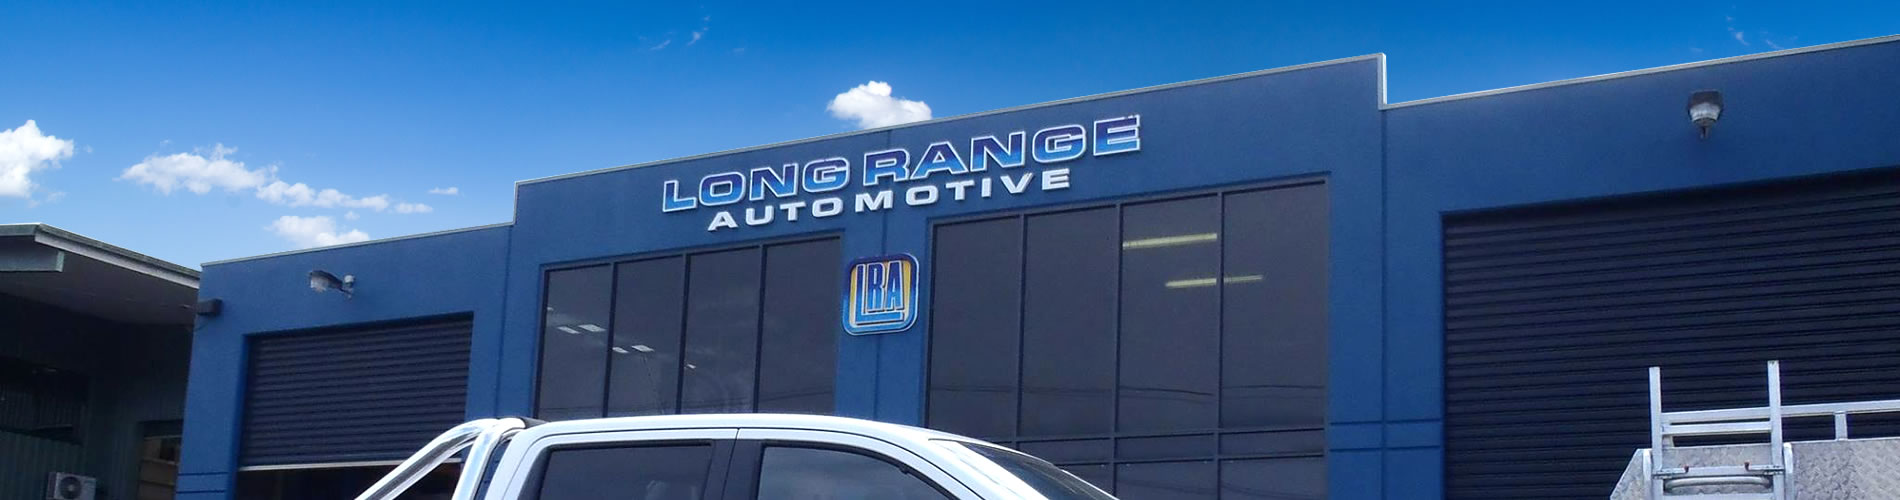 Long Range Automotive3